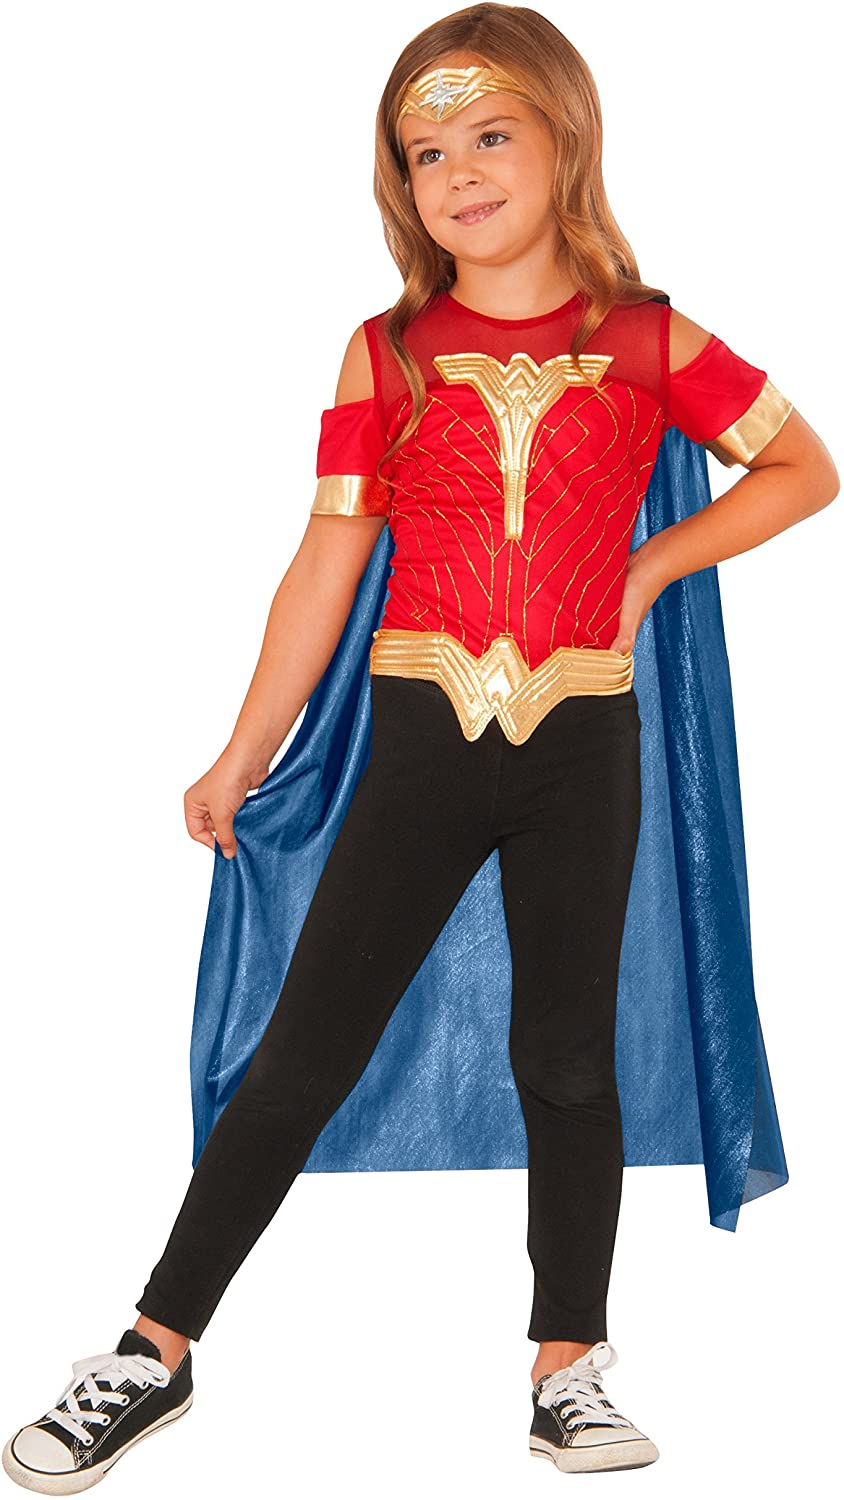 Imagine by Rubie's Wonder Woman Child's Costume Shirt with Cape and Tiara